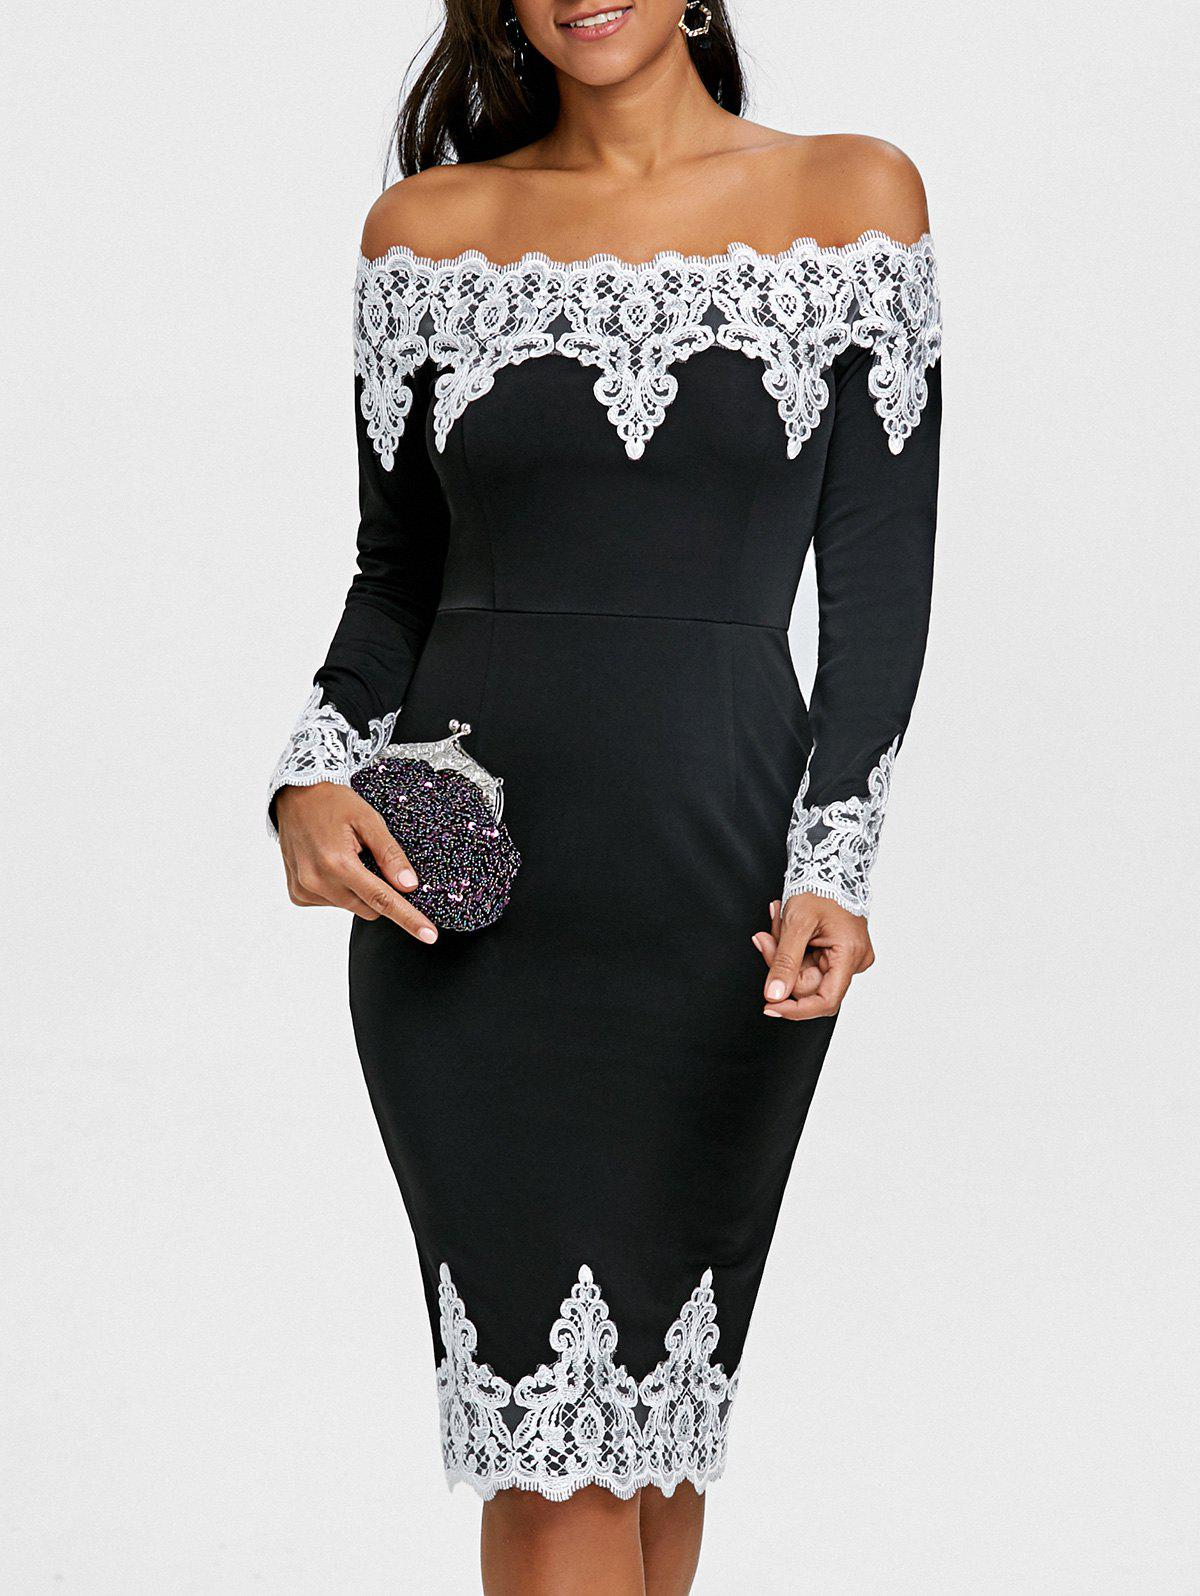 Shop Lace Trim Off The Shoulder Evening Dress